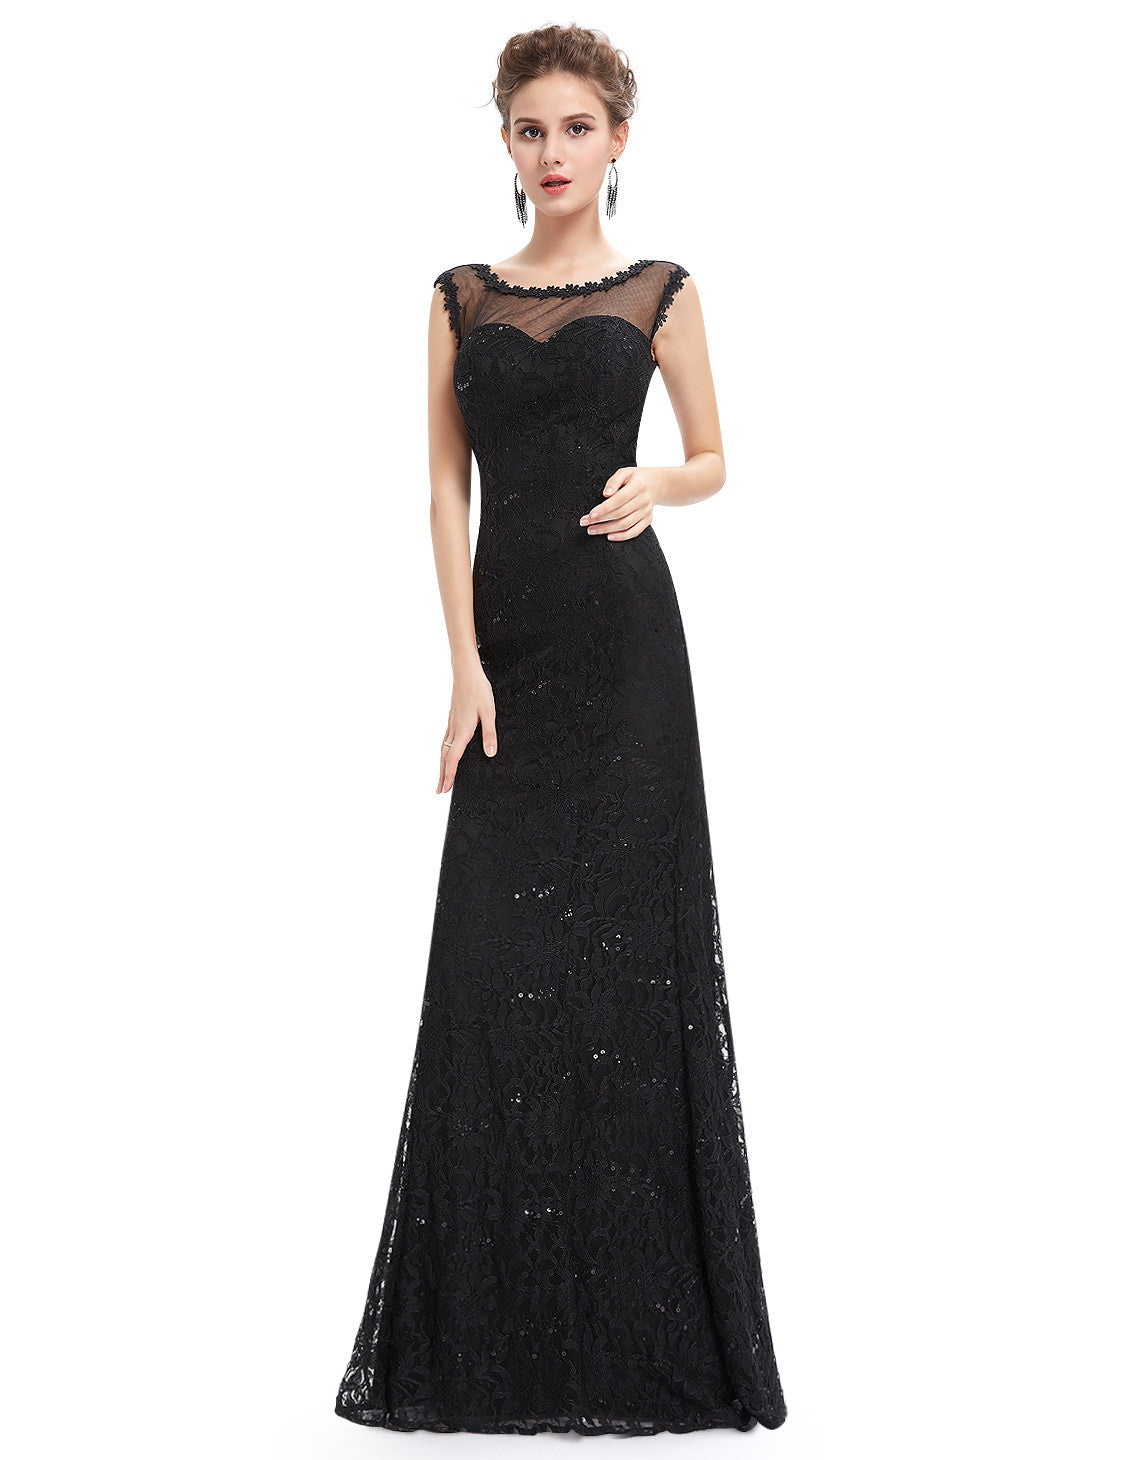 Obeige Elegant Black Lacy Long Evening Dress